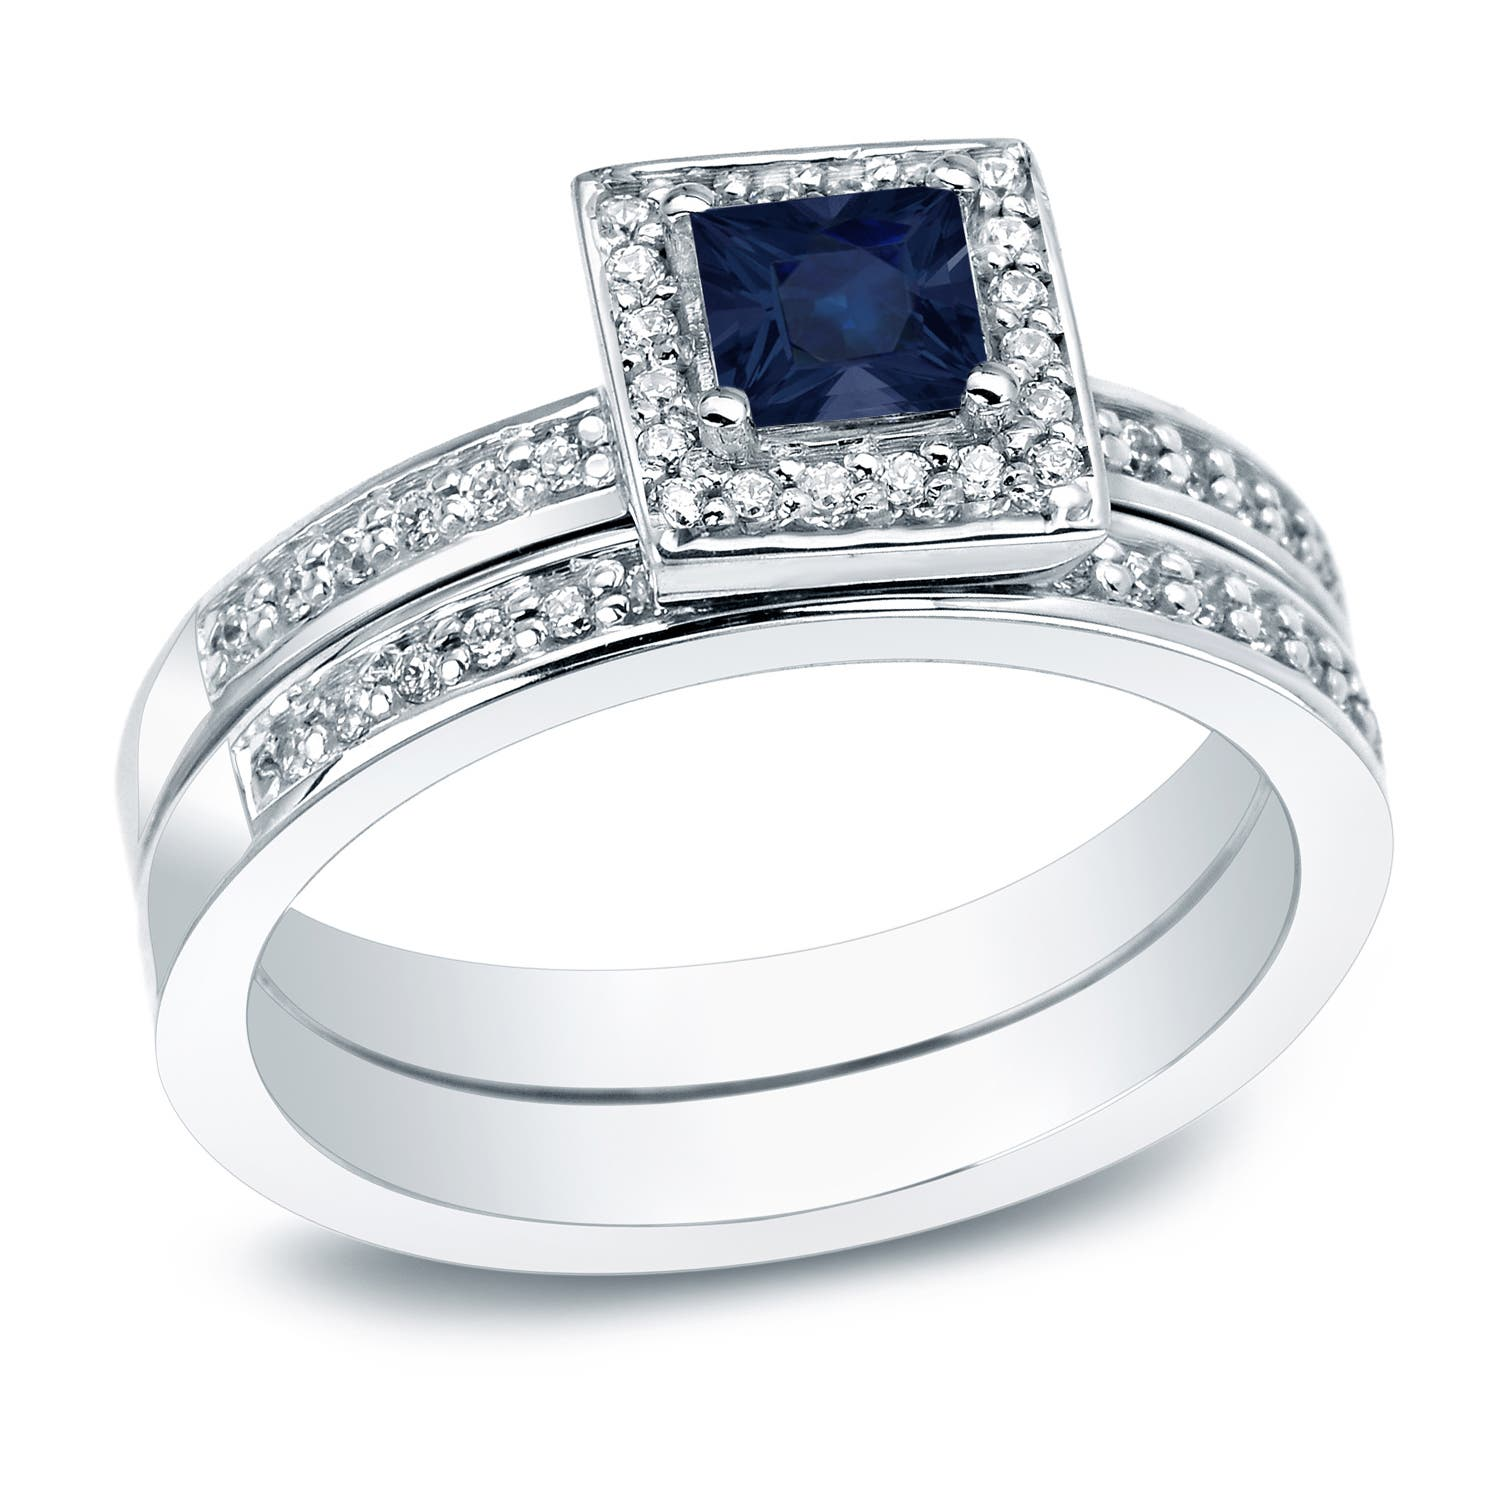 Engagement Rings Shop Online At Overstock